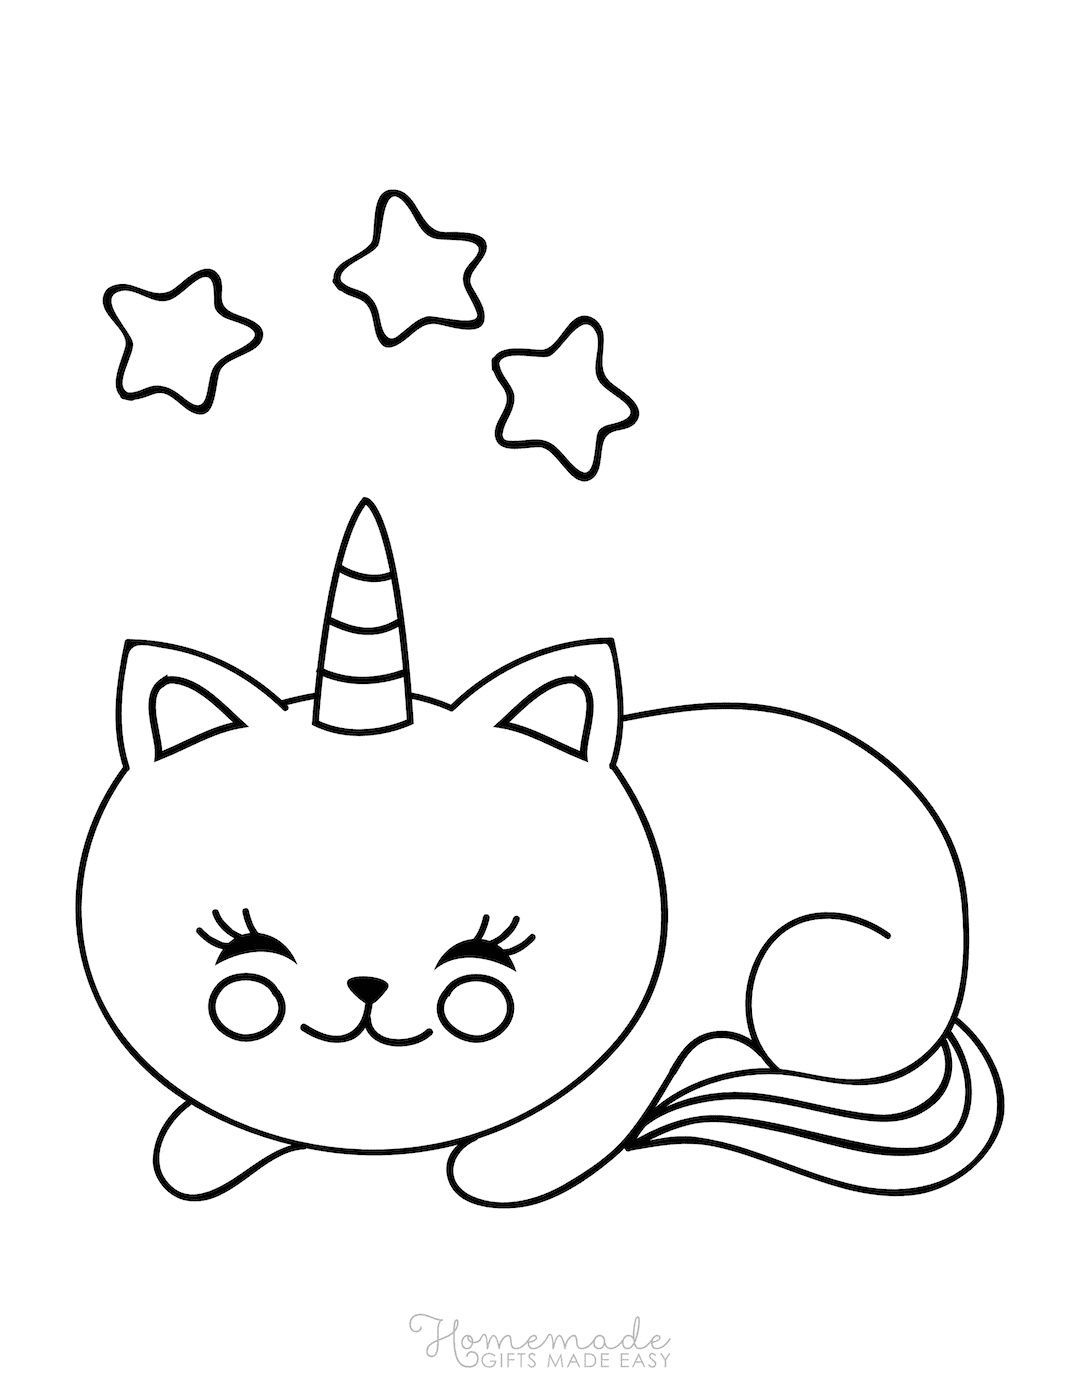 75 Magical Unicorn Coloring Pages For Kids Adults Free Printables Unicorn Coloring Pages Love Coloring Pages Kids Printable Coloring Pages